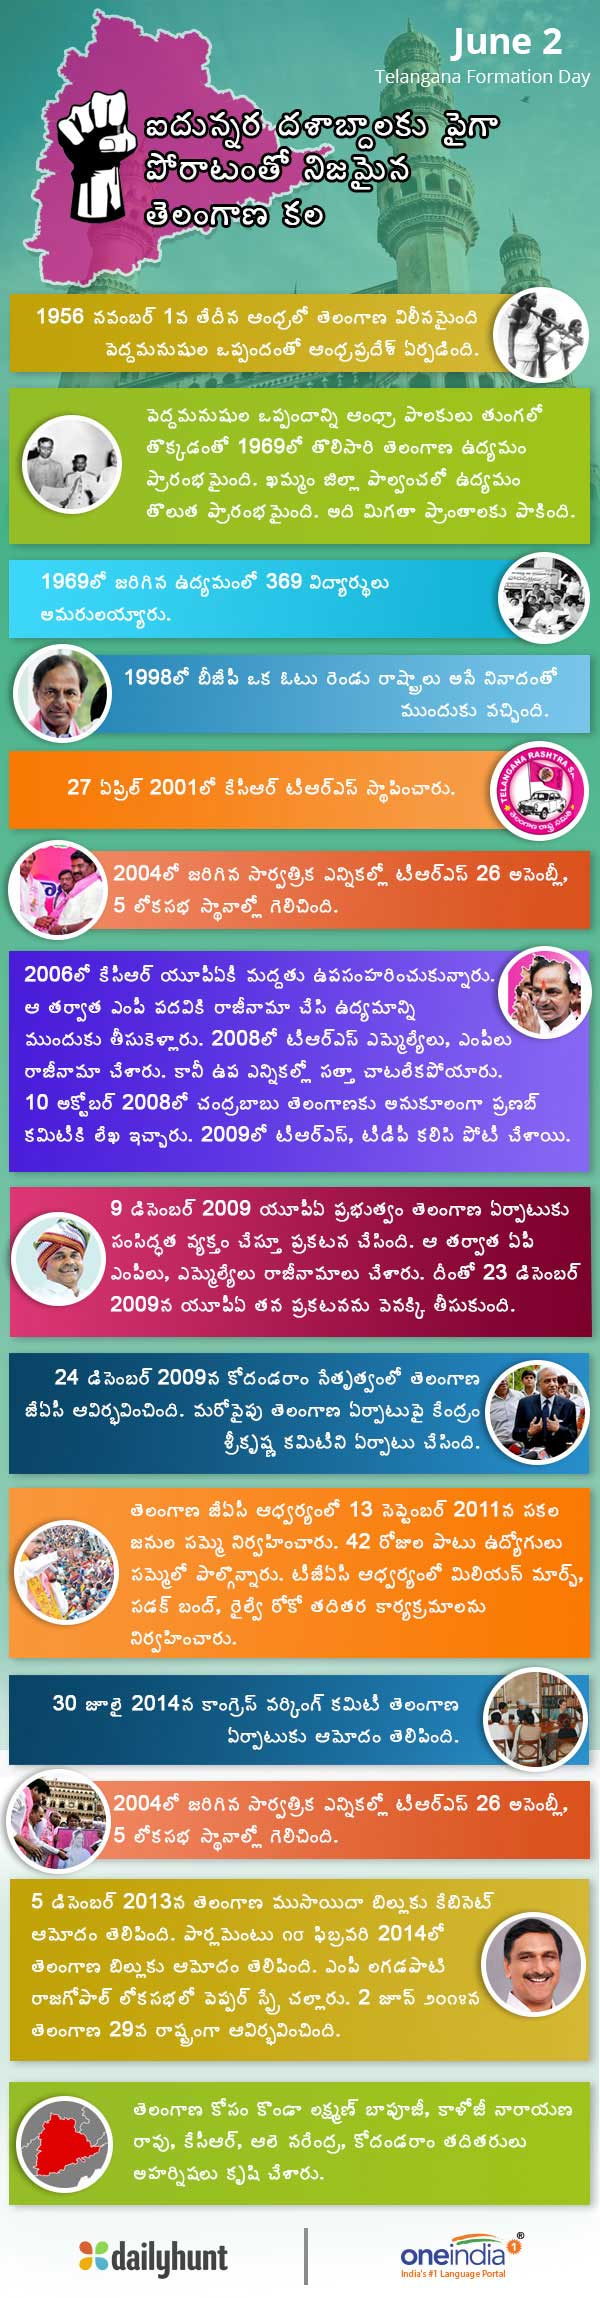 why there is No Place For Telangana Song On Formation Day? is it repeats again?